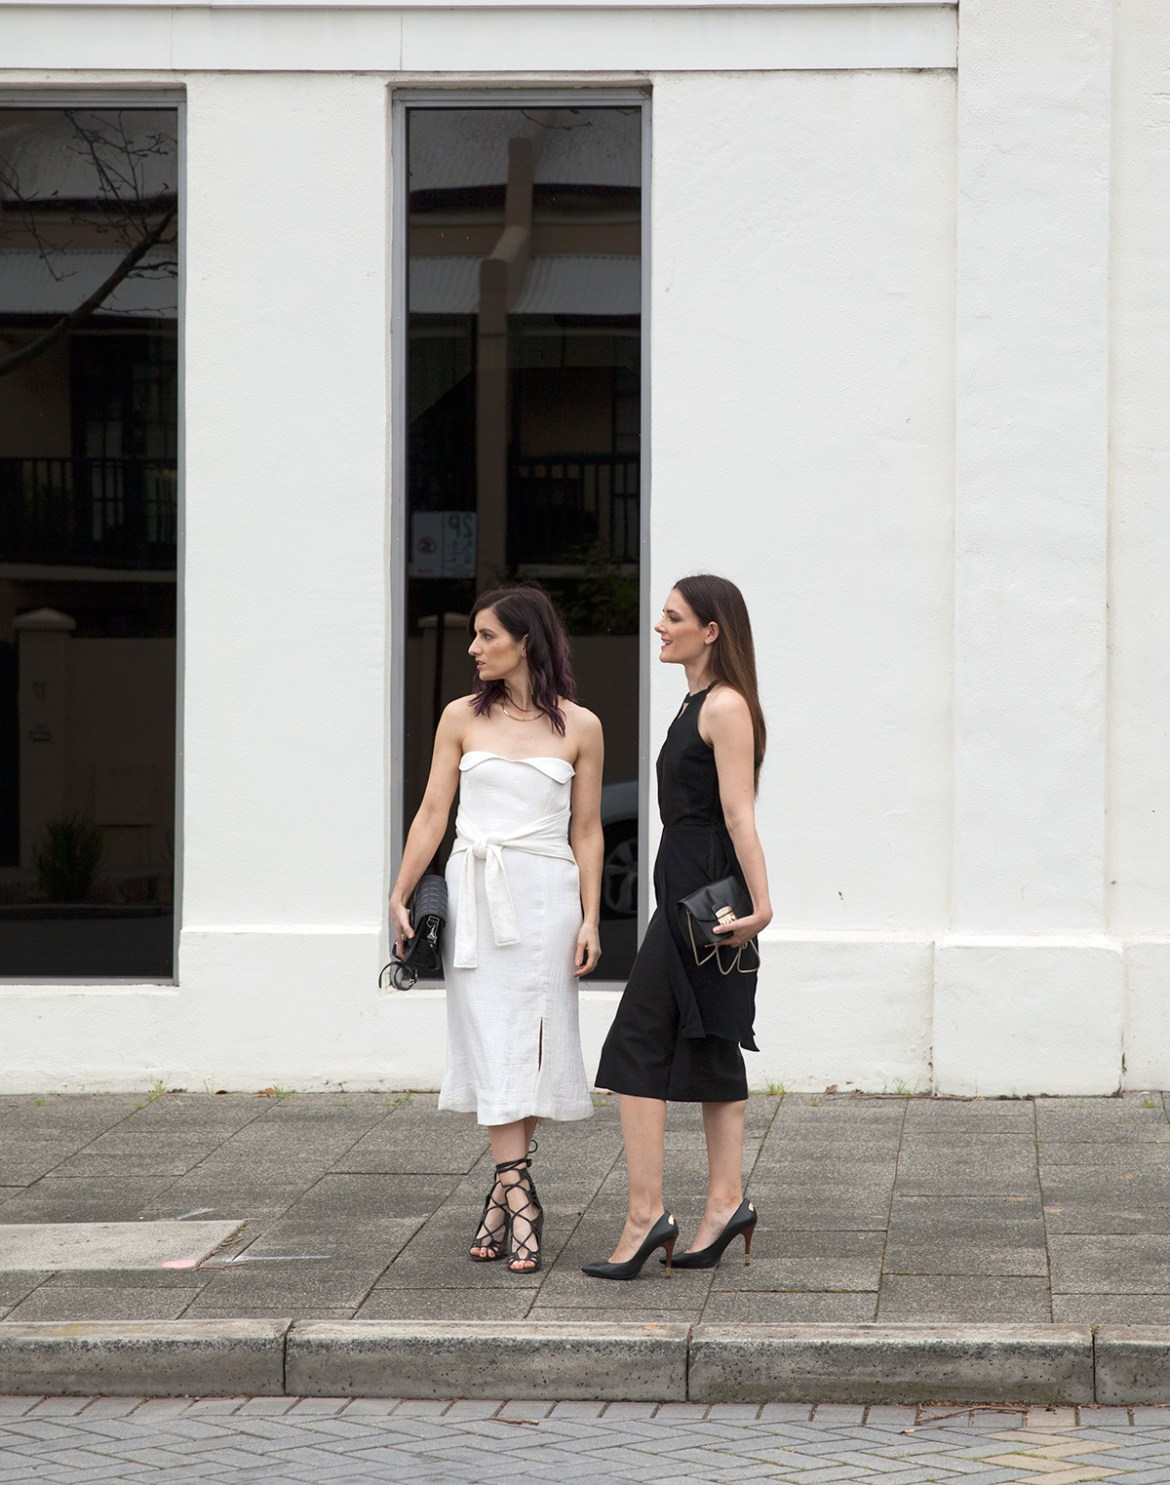 Perth fashion bloggers She Does (left) @shedoesstyle and Inspiring Wit (right) @inspiringwit in Wild Horses for race wear